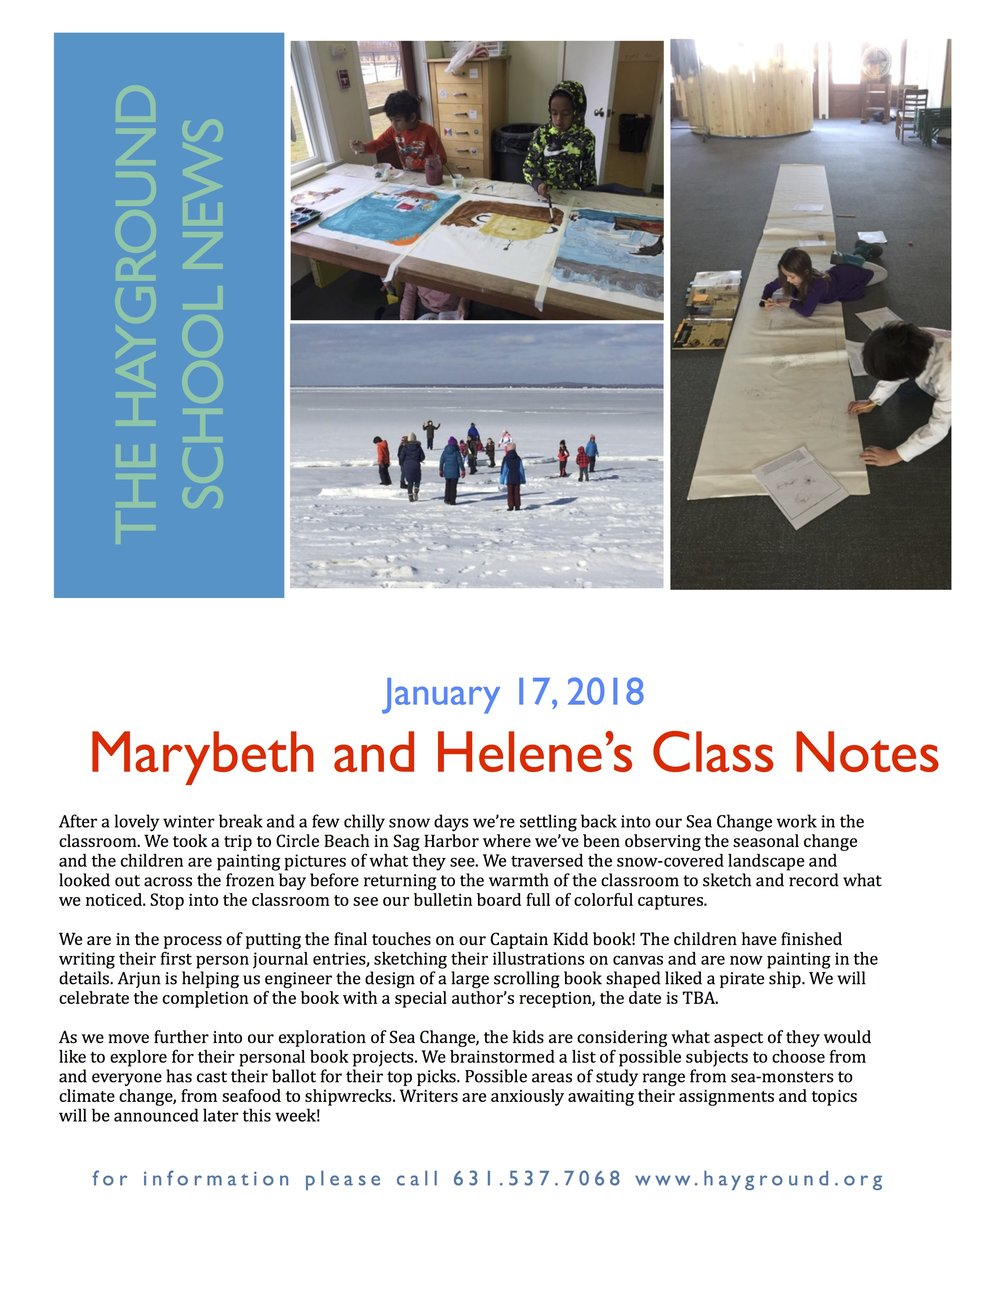 Class Notes 01-17-18 copy 2.jpg